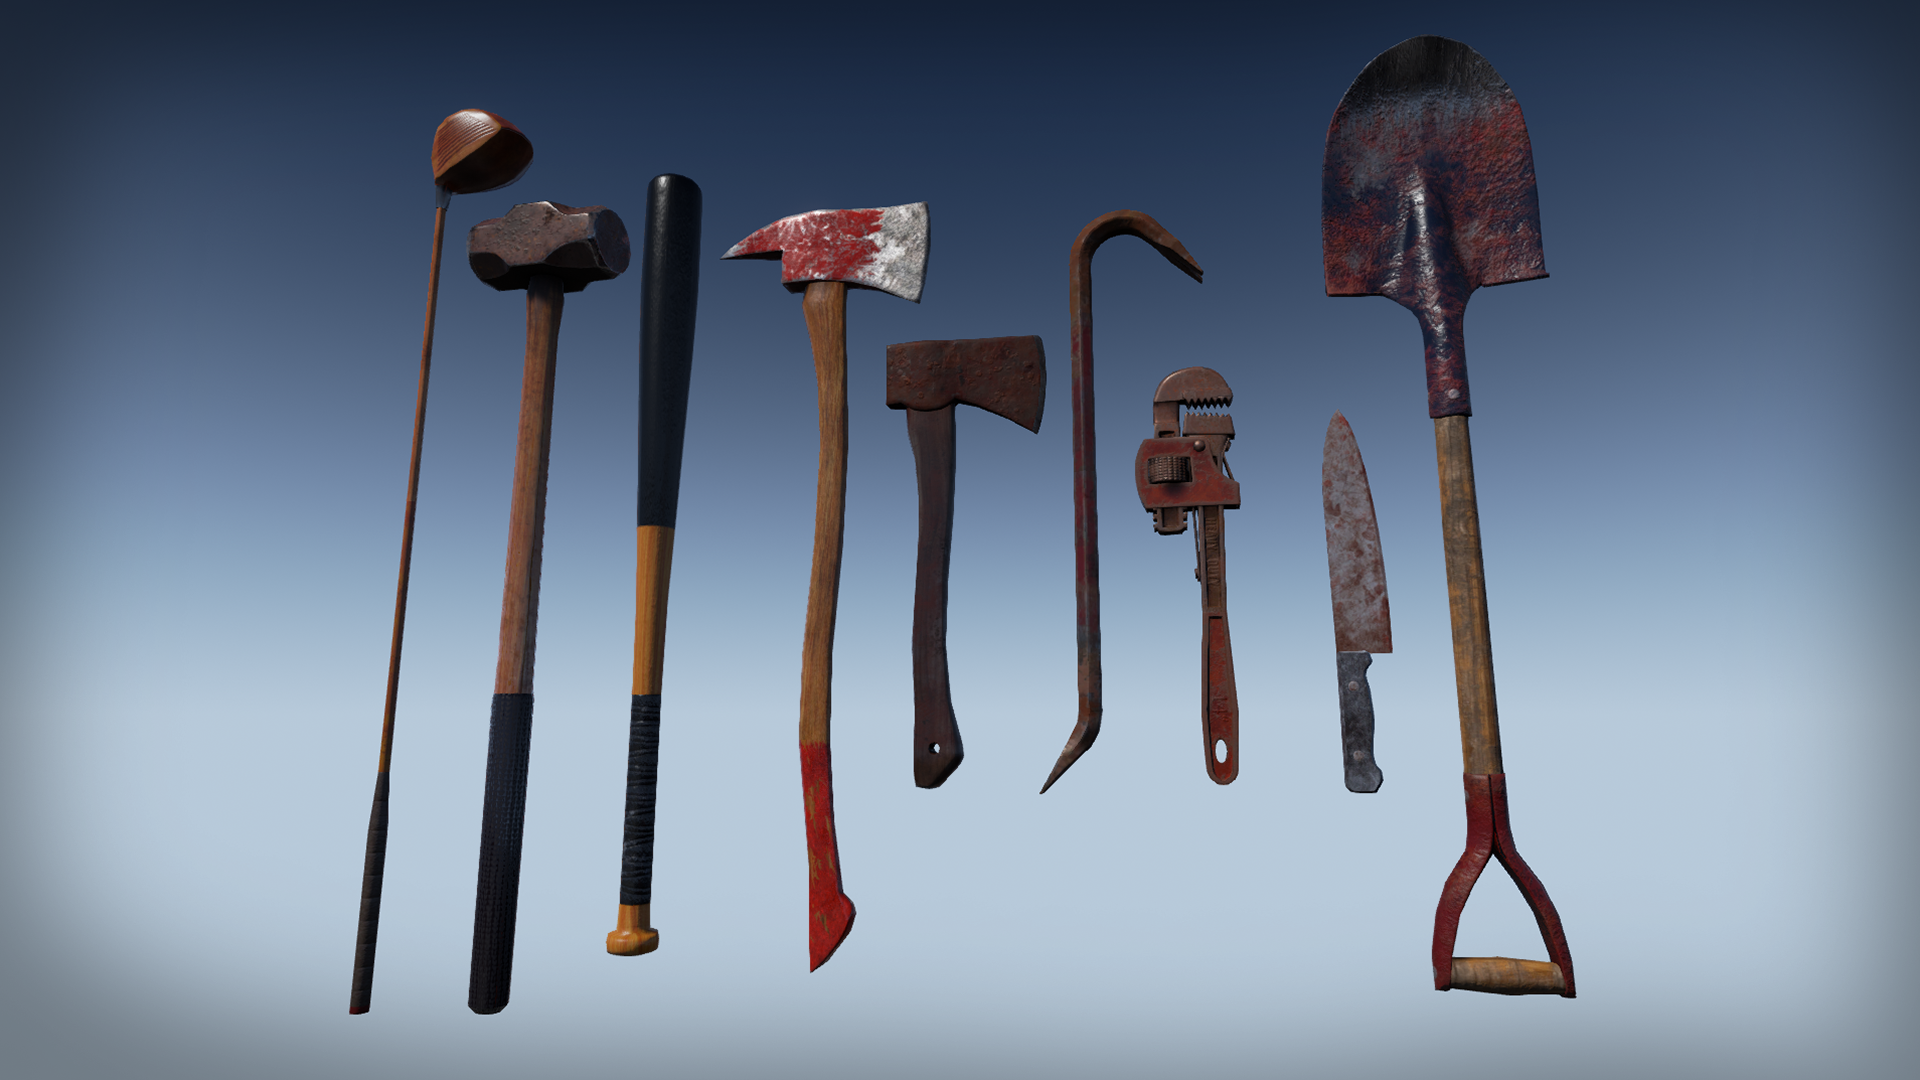 Zombie Melee Weapons by Jeong Seong Kyo in Weapons - UE4 ...